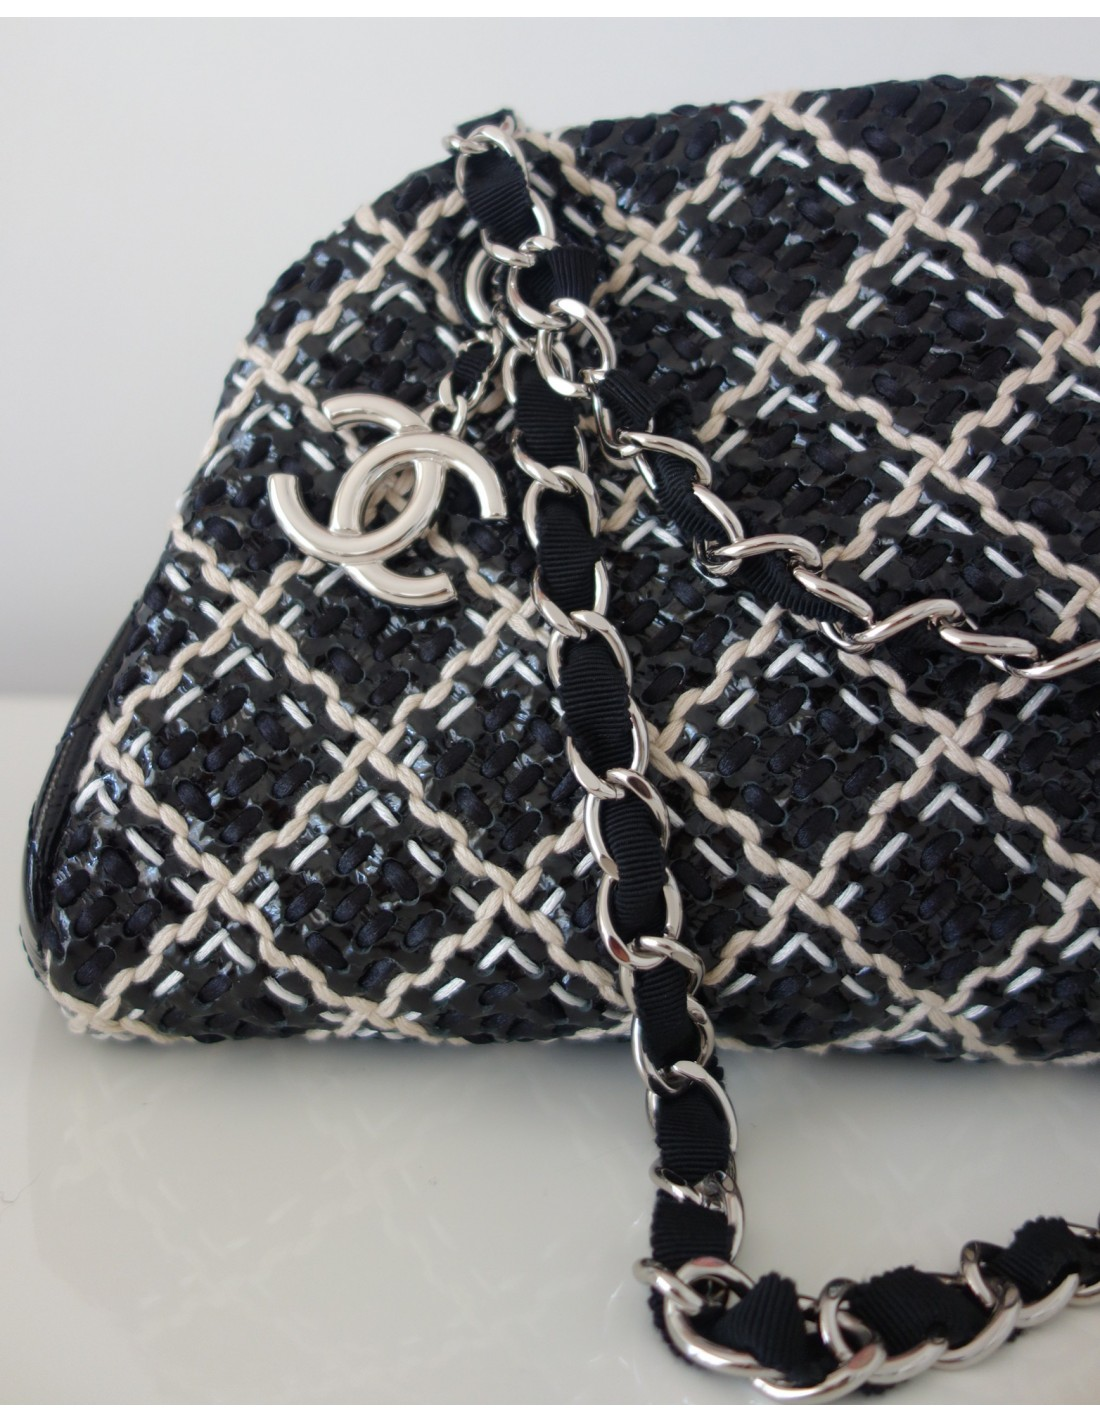 Sac chanel noir et blanc atoutluxe boutique for Sac chanel interieur